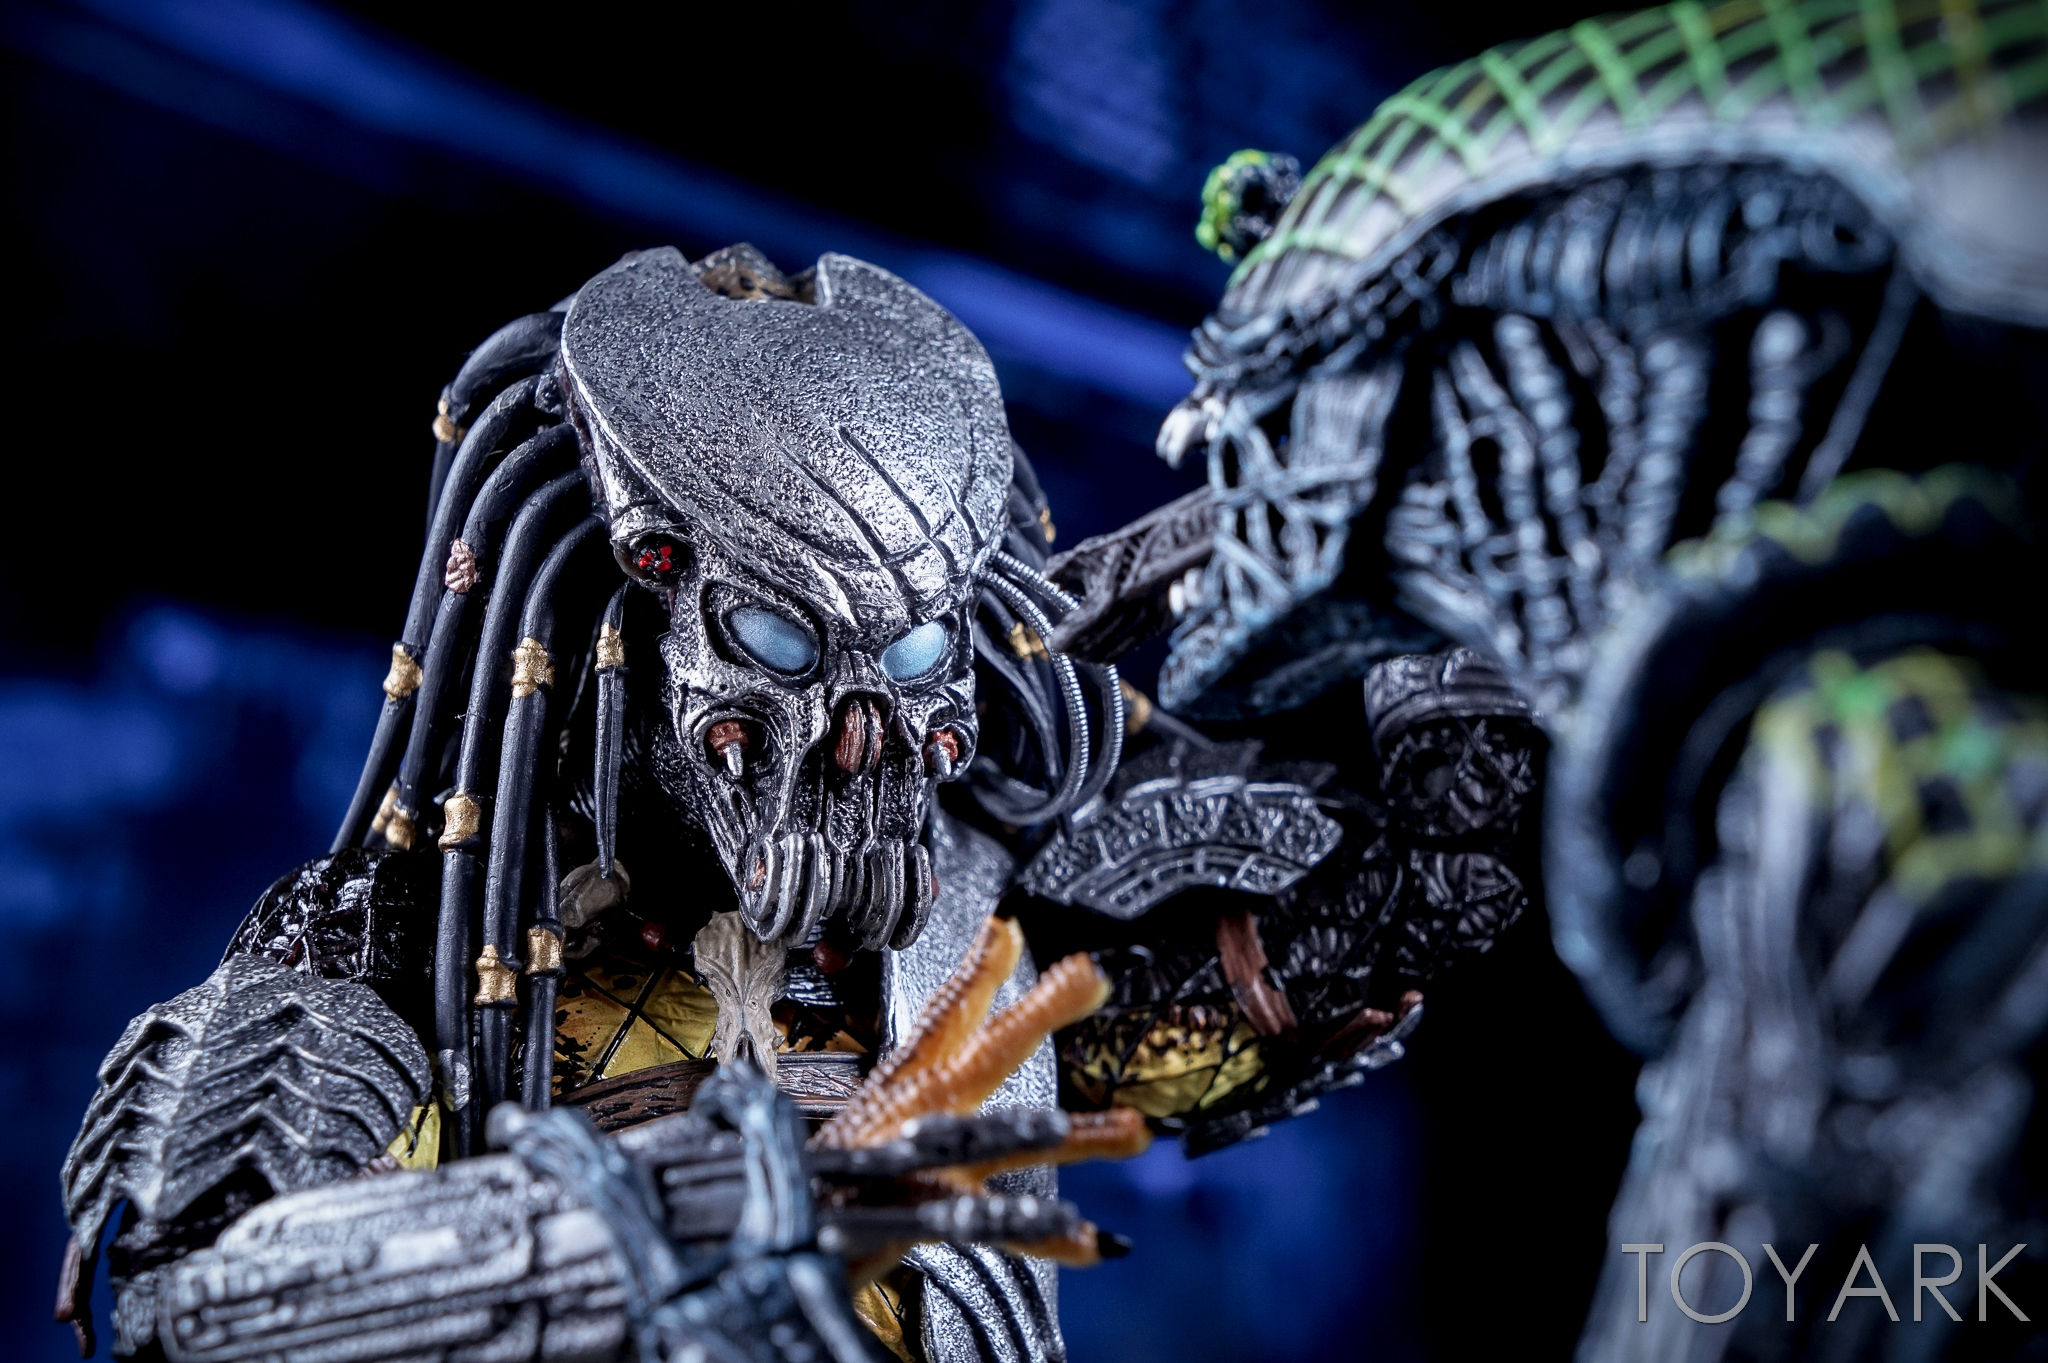 http://news.toyark.com/wp-content/uploads/sites/4/2016/10/NECA-AvP-Rivalry-Reborn-Set-060.jpg